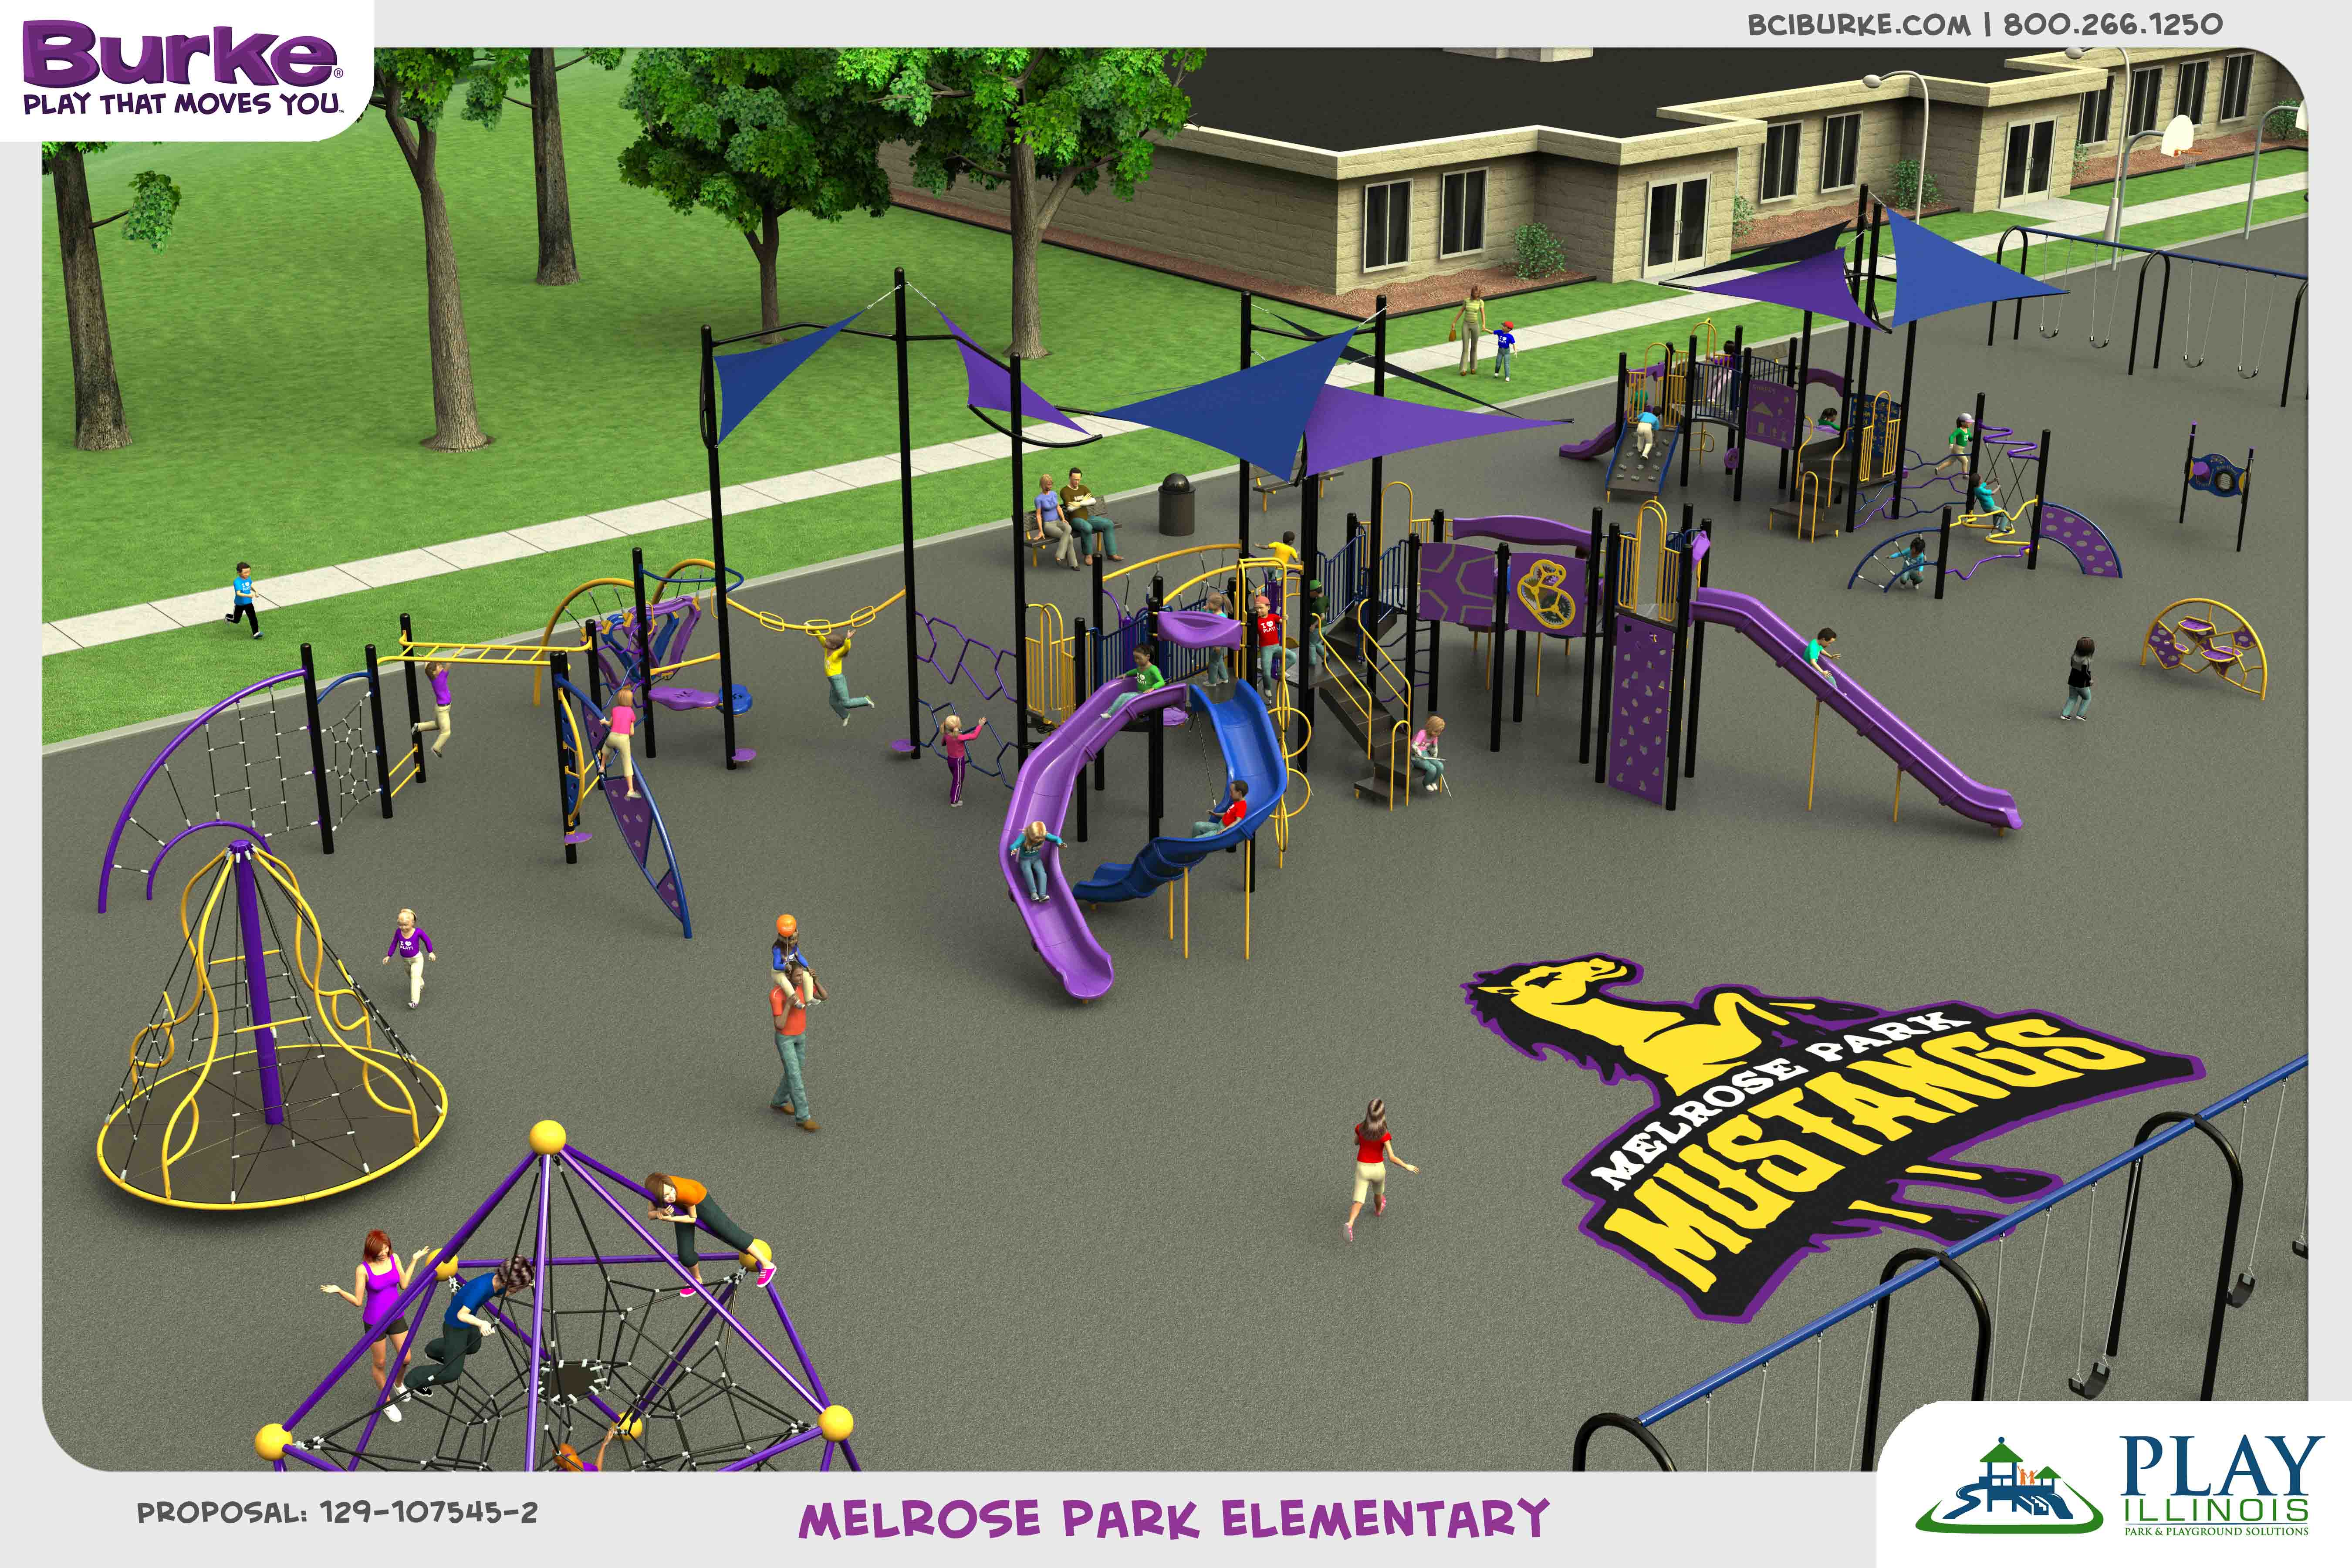 MelroseParkElementary-1 dream build play experience accessible playgrounds